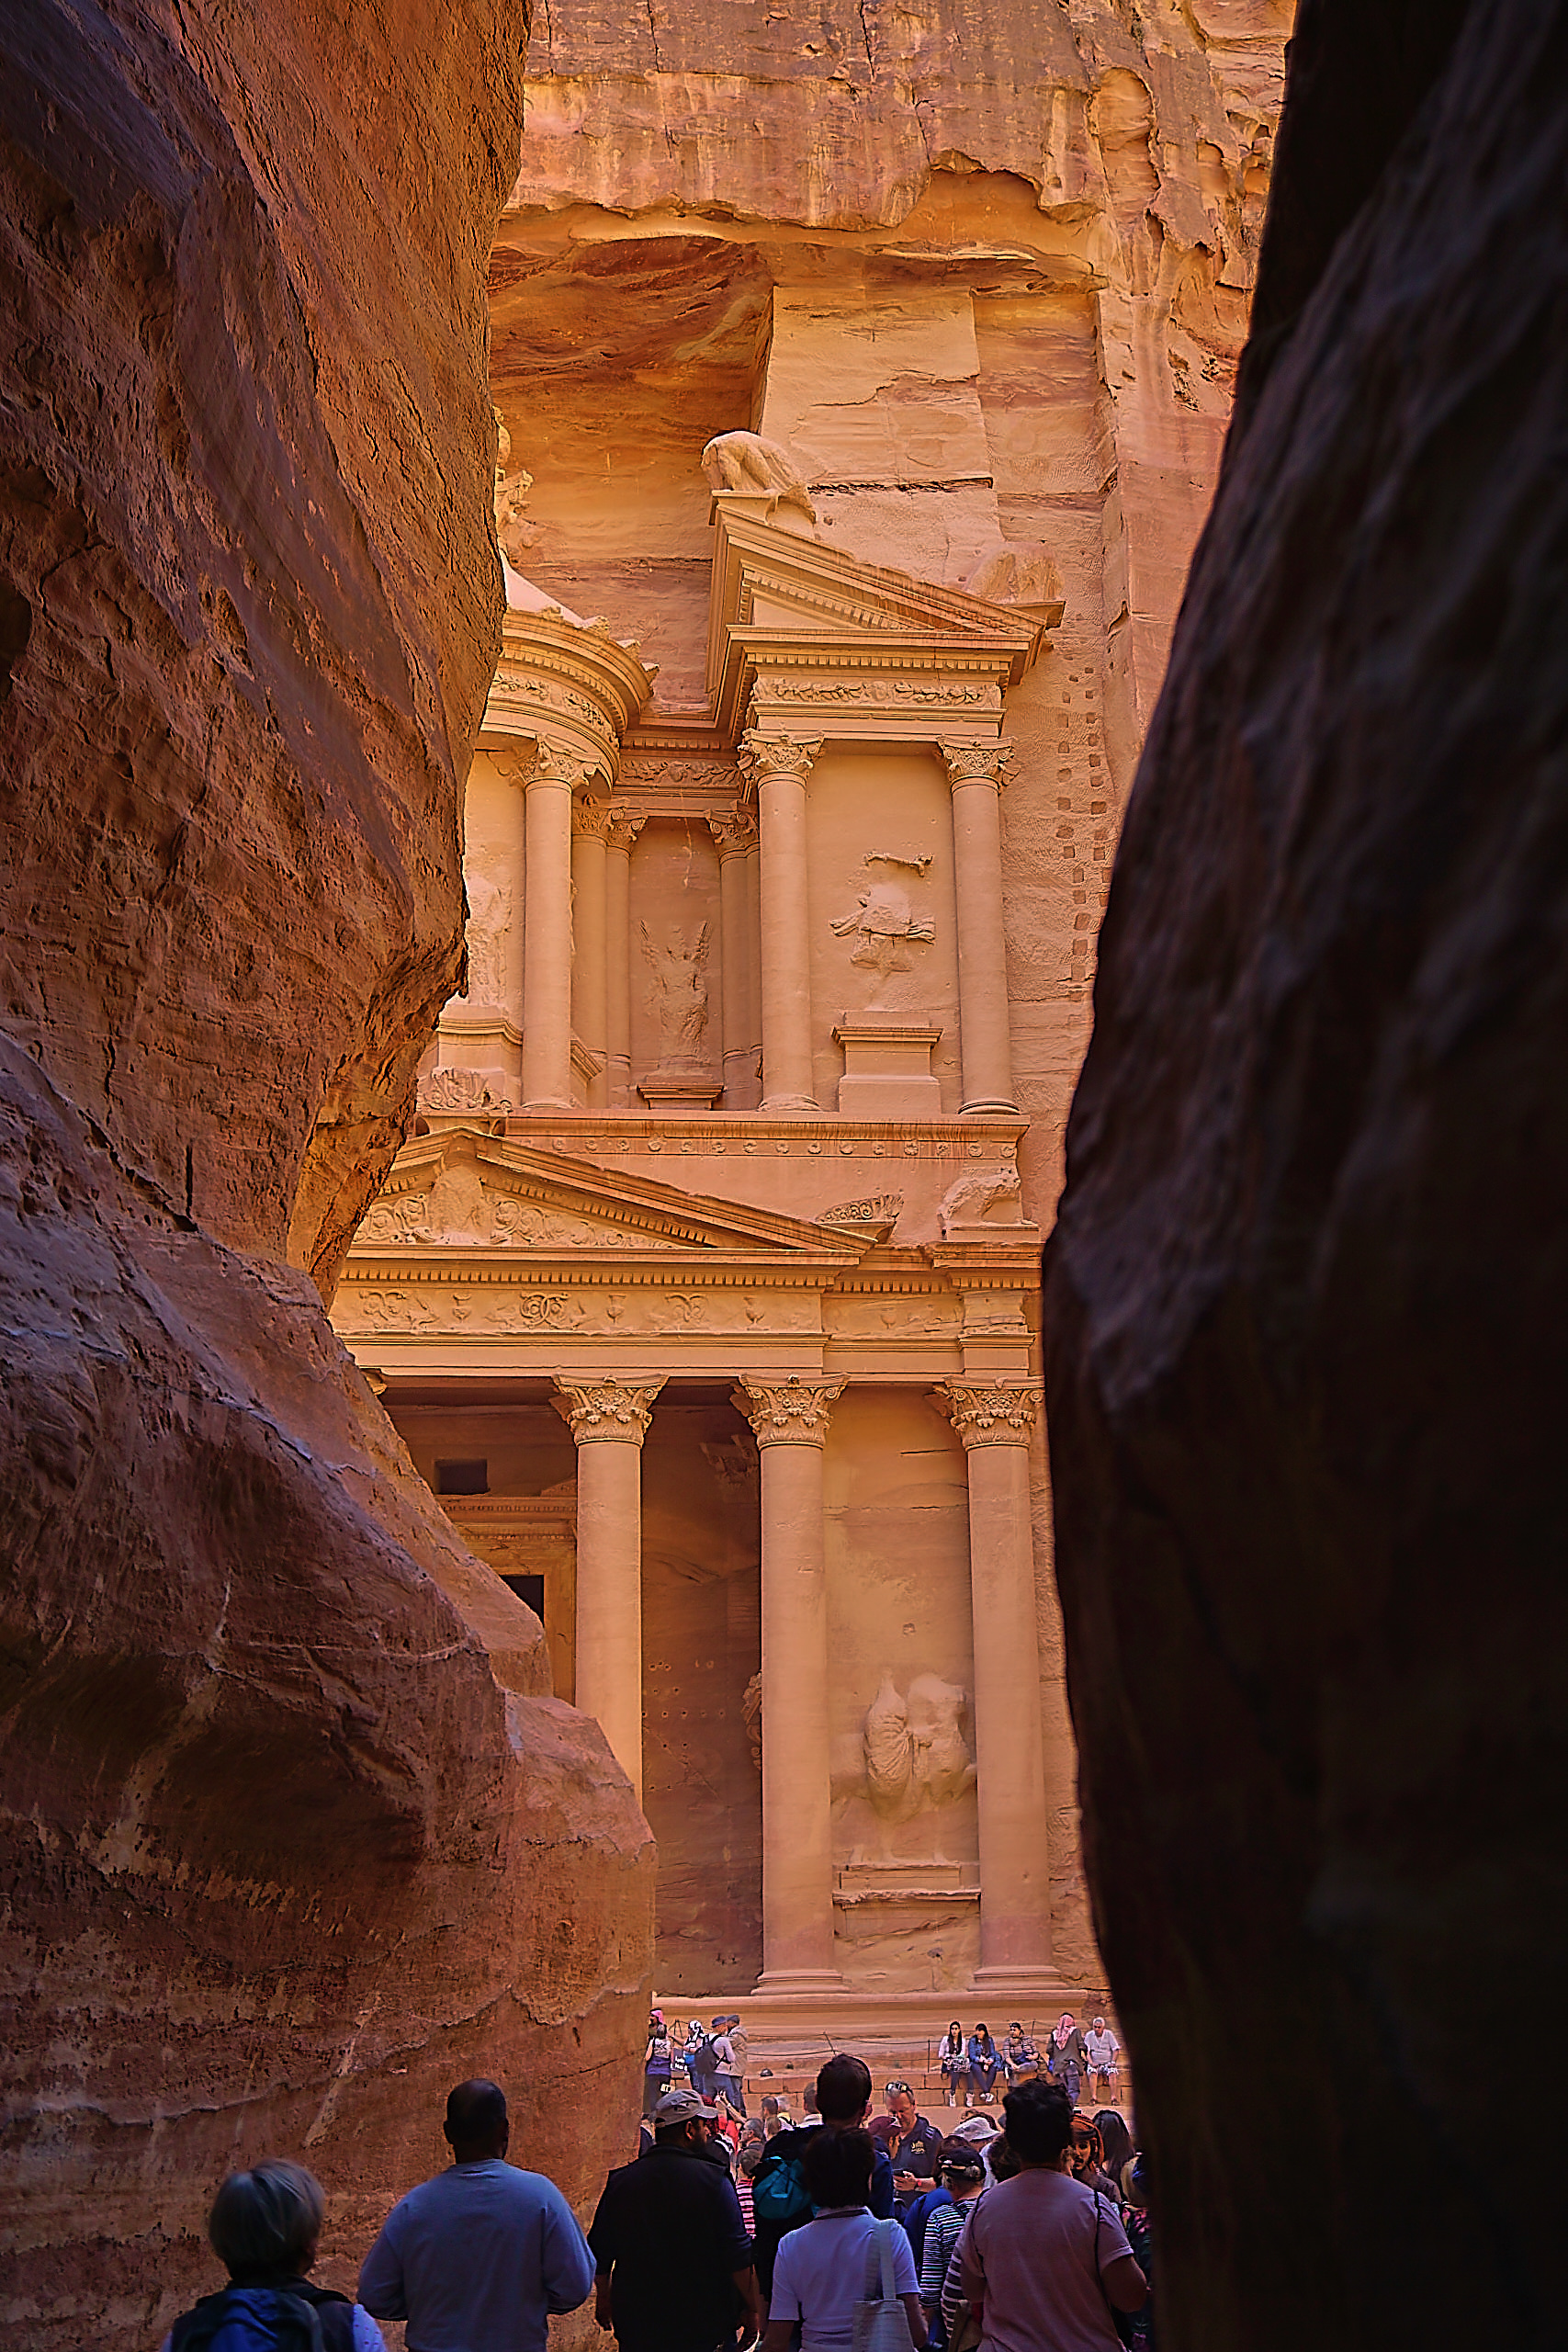 the entrance to the Treasiry in Petra